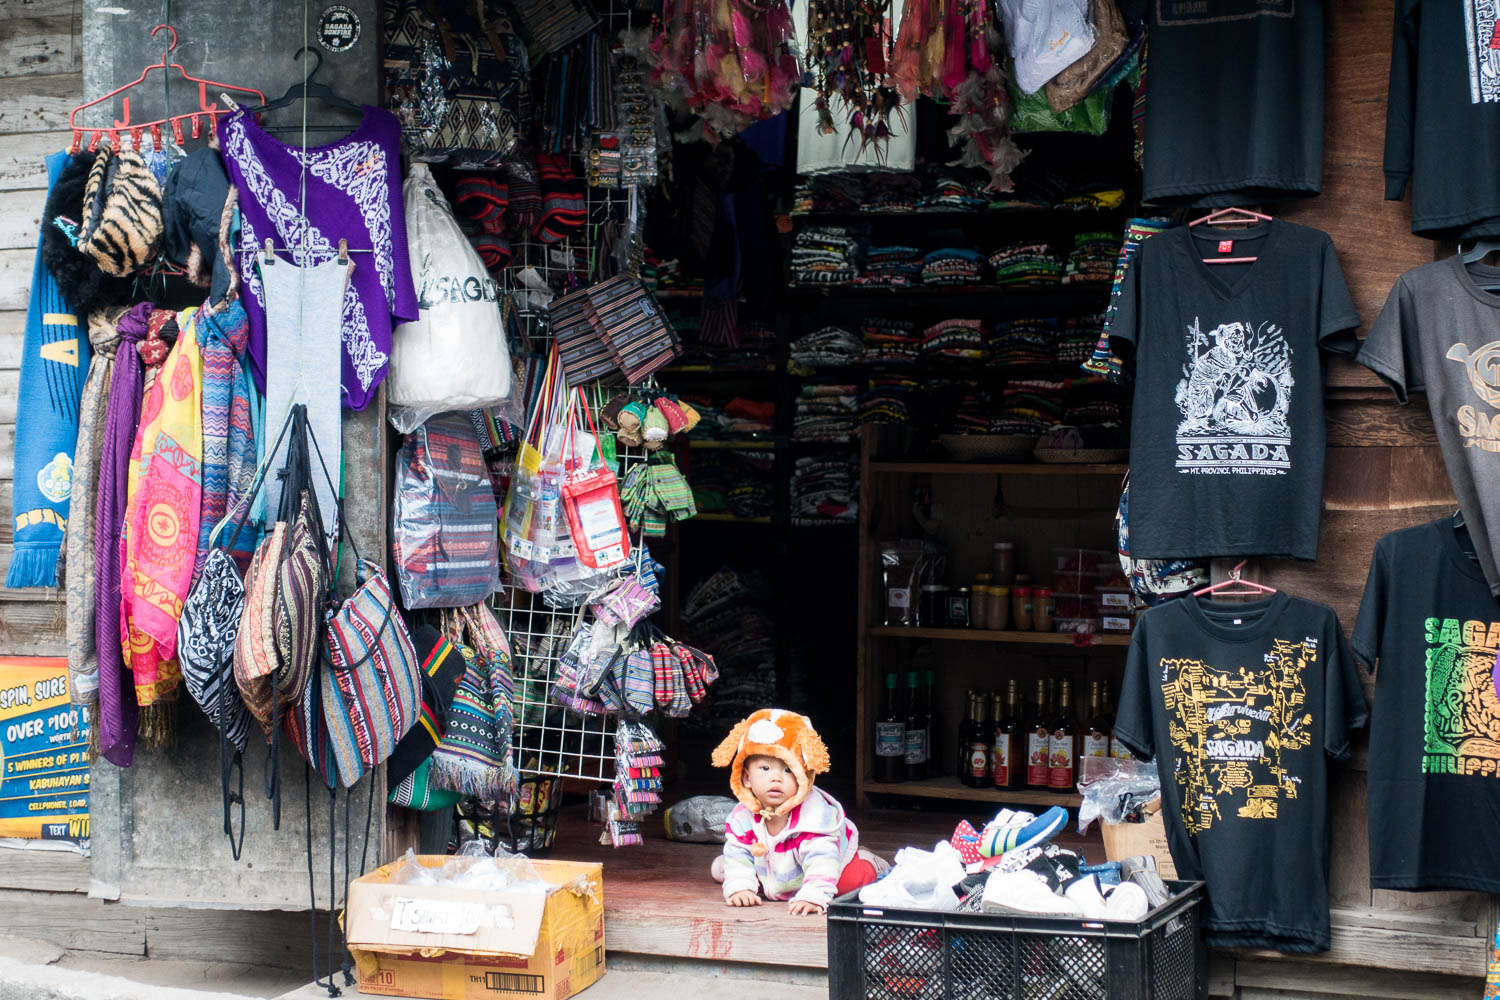 The cutest shopskeeper along the bustling main road with shops and restaurants.